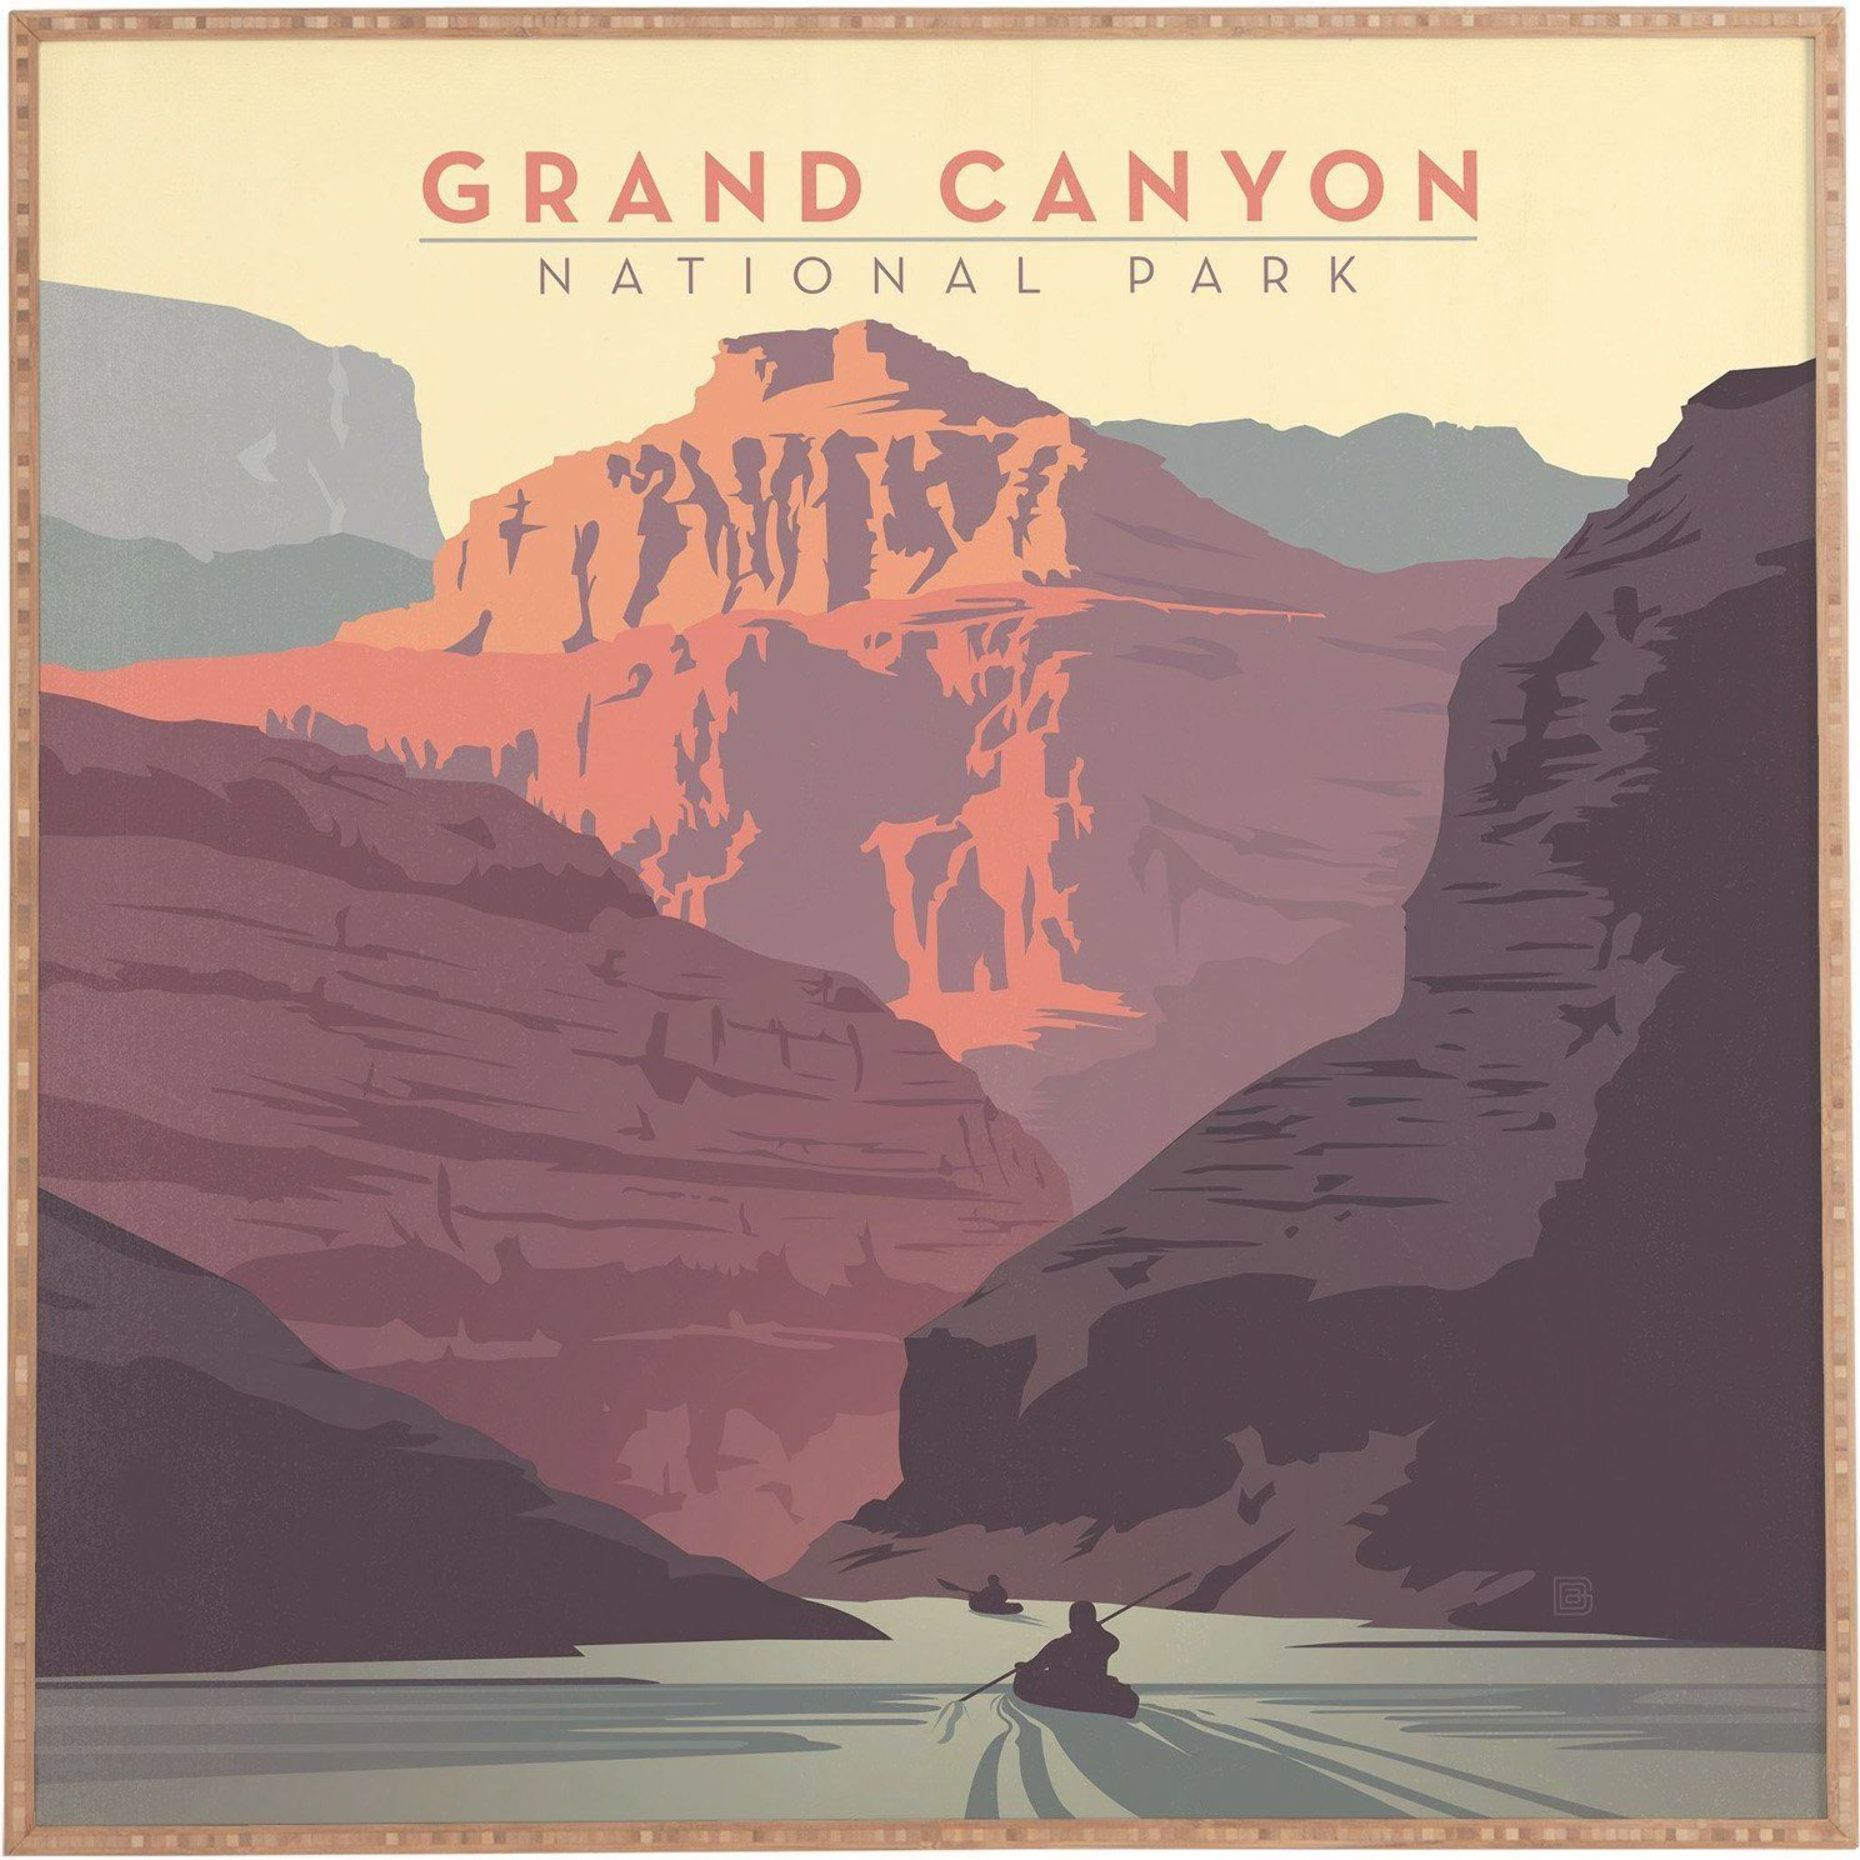 Deny Designs Anderson Design Group Grand Canyon National Park Framed Wall Art National Park Posters Vintage Travel Posters Retro Travel Poster